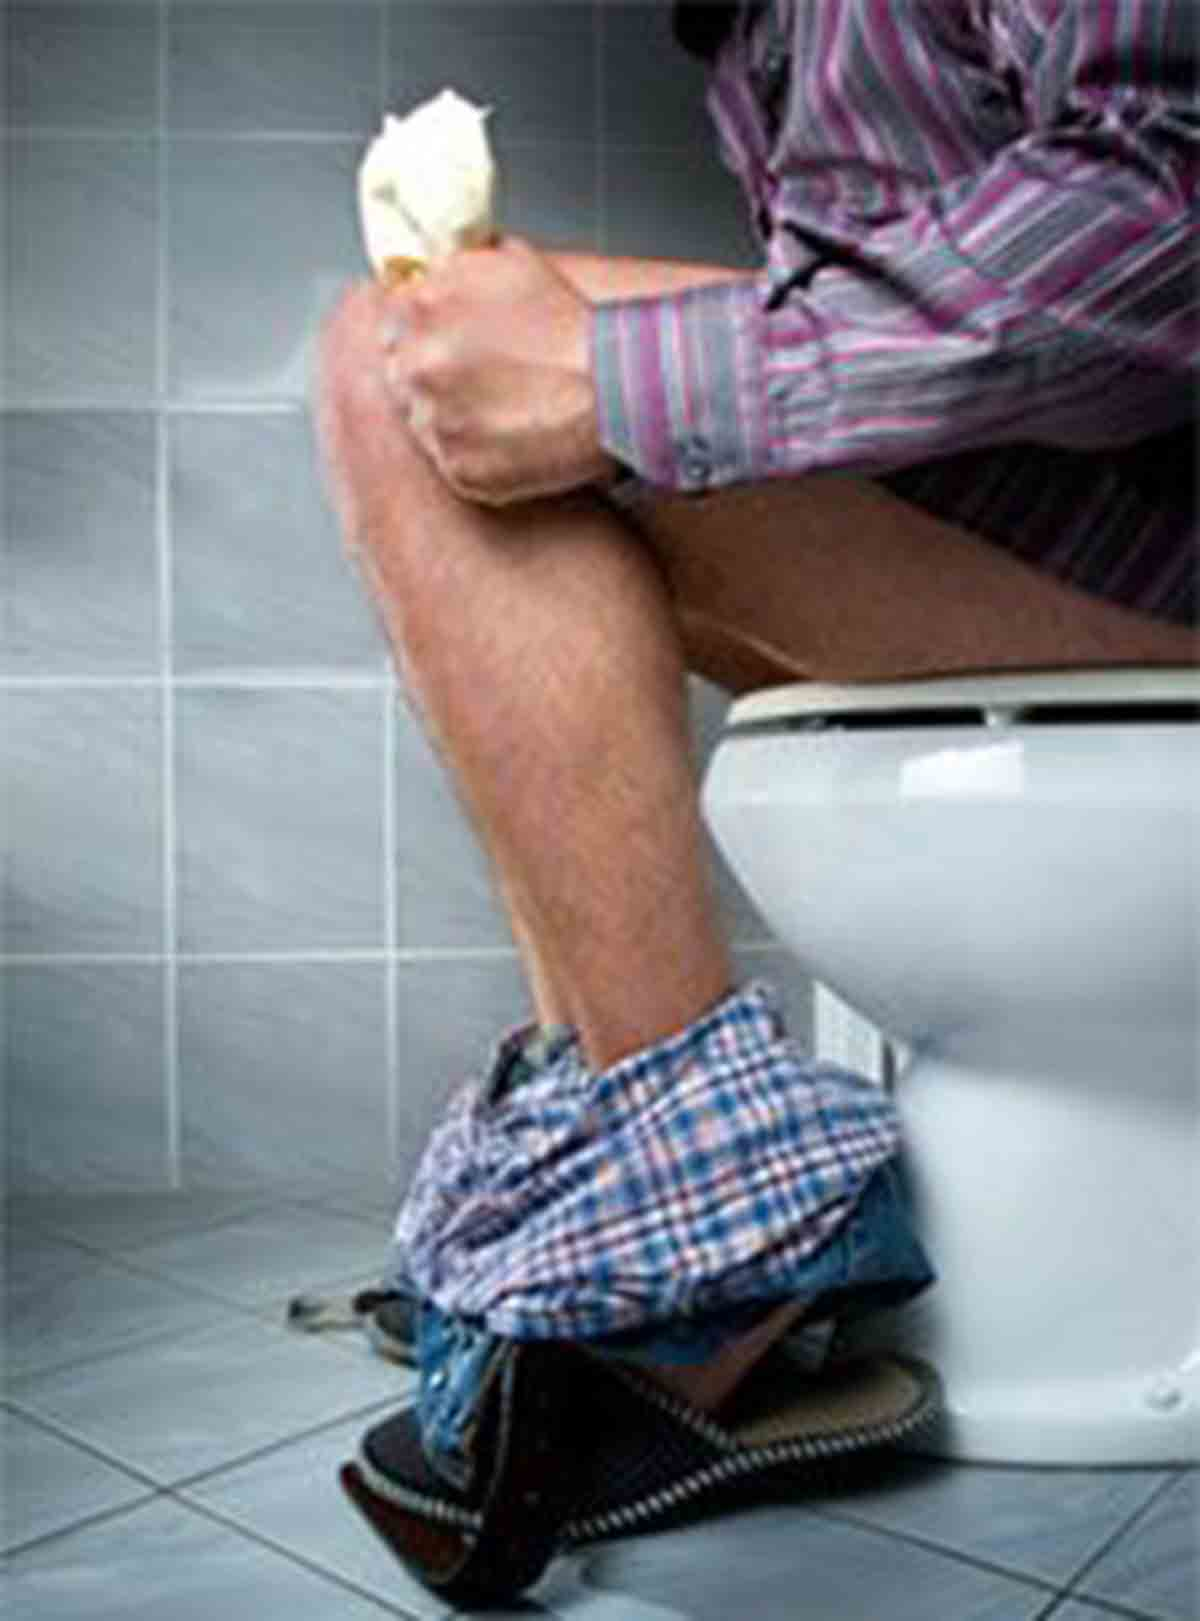 Guy sitting on the toilet